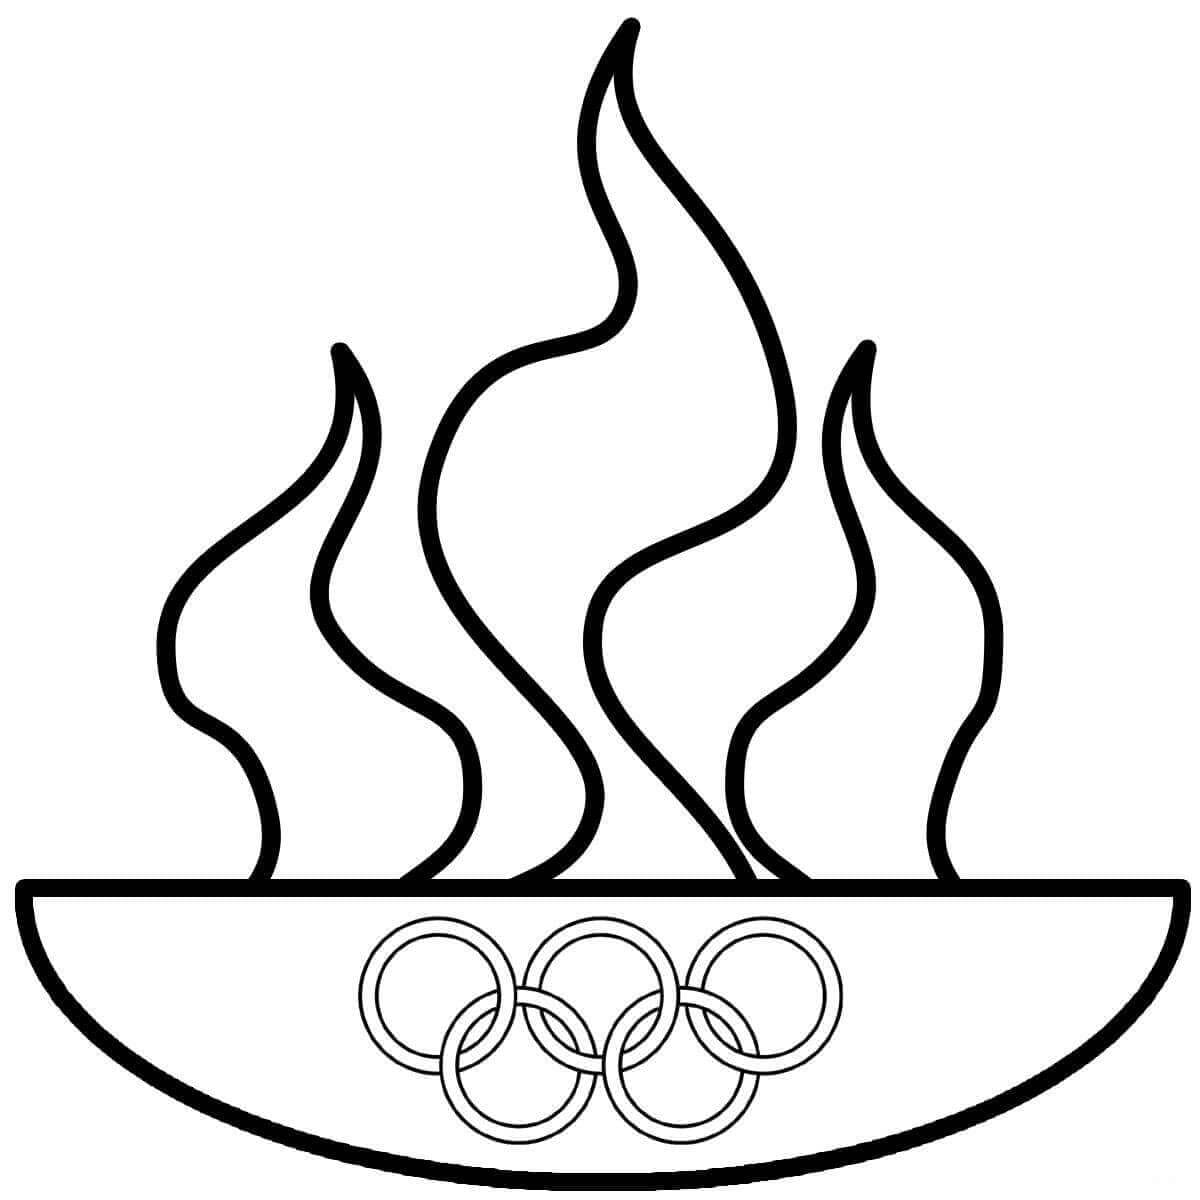 Olympics Flame Coloring Page